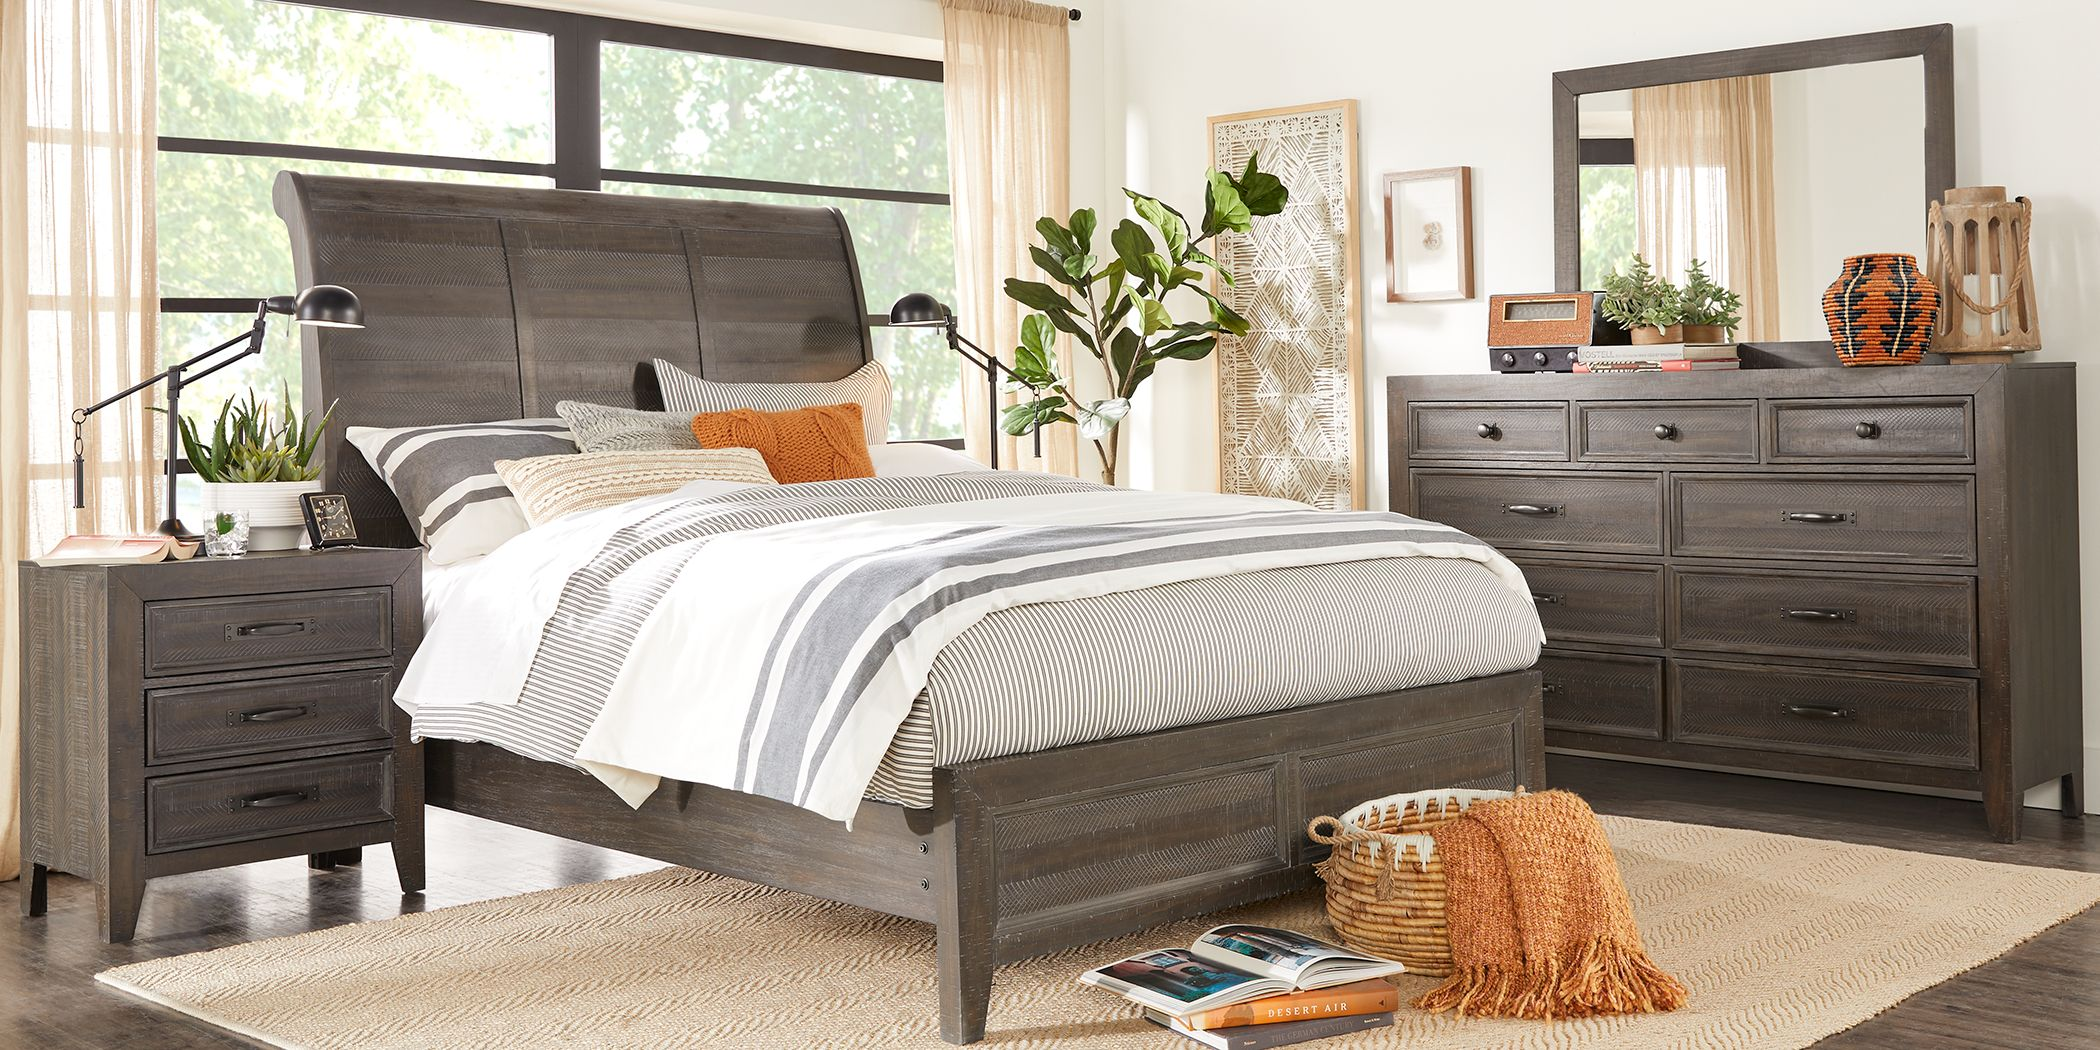 Image of: Discount Bedroom Furniture Rooms To Go Outlet